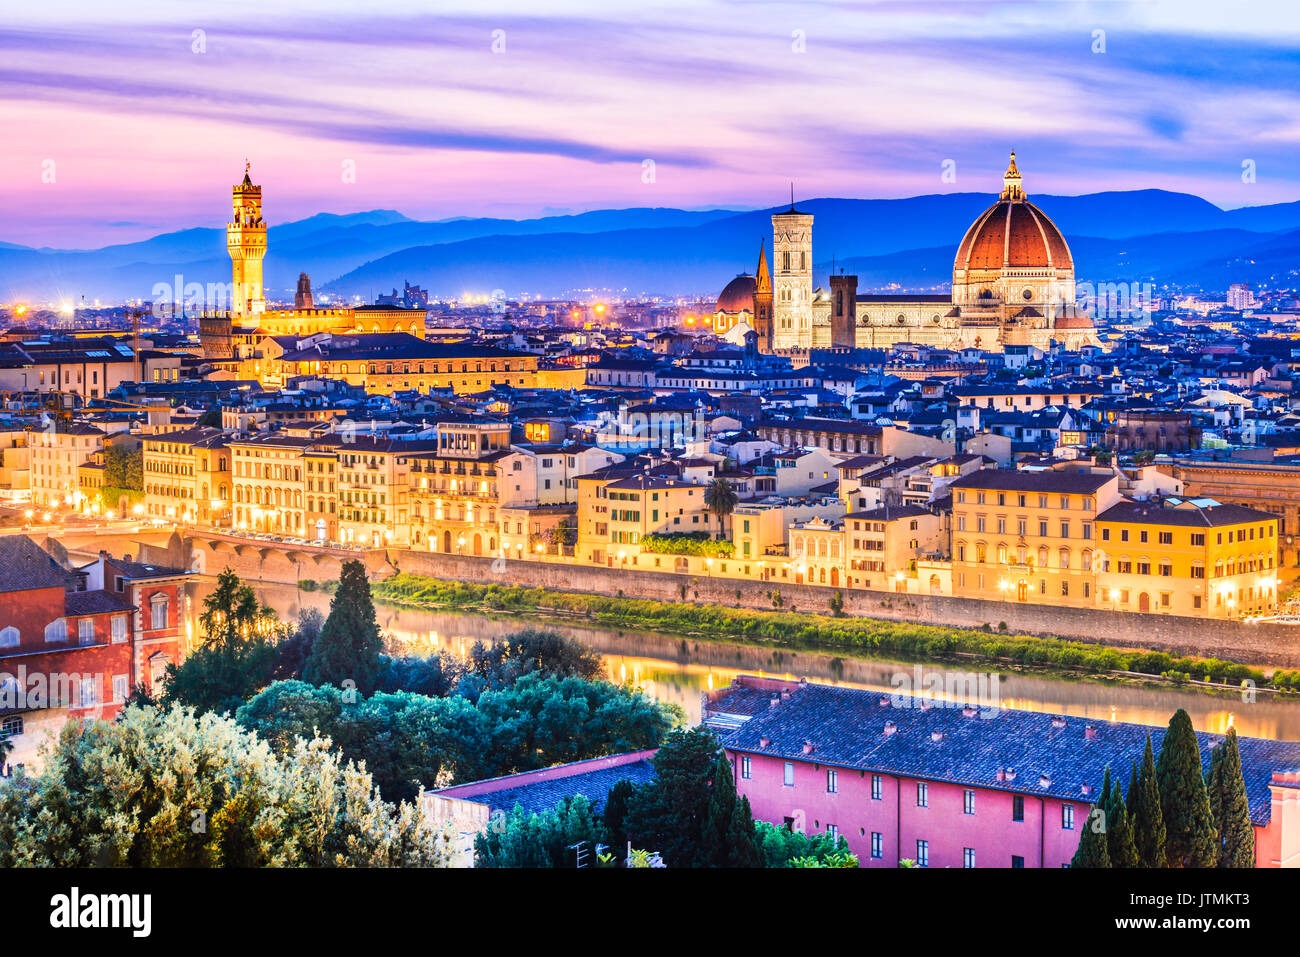 Florence, Tuscany - Night scenery with Duomo Santa Maria del Fiori, Renaissance architecture in Italy. - Stock Image